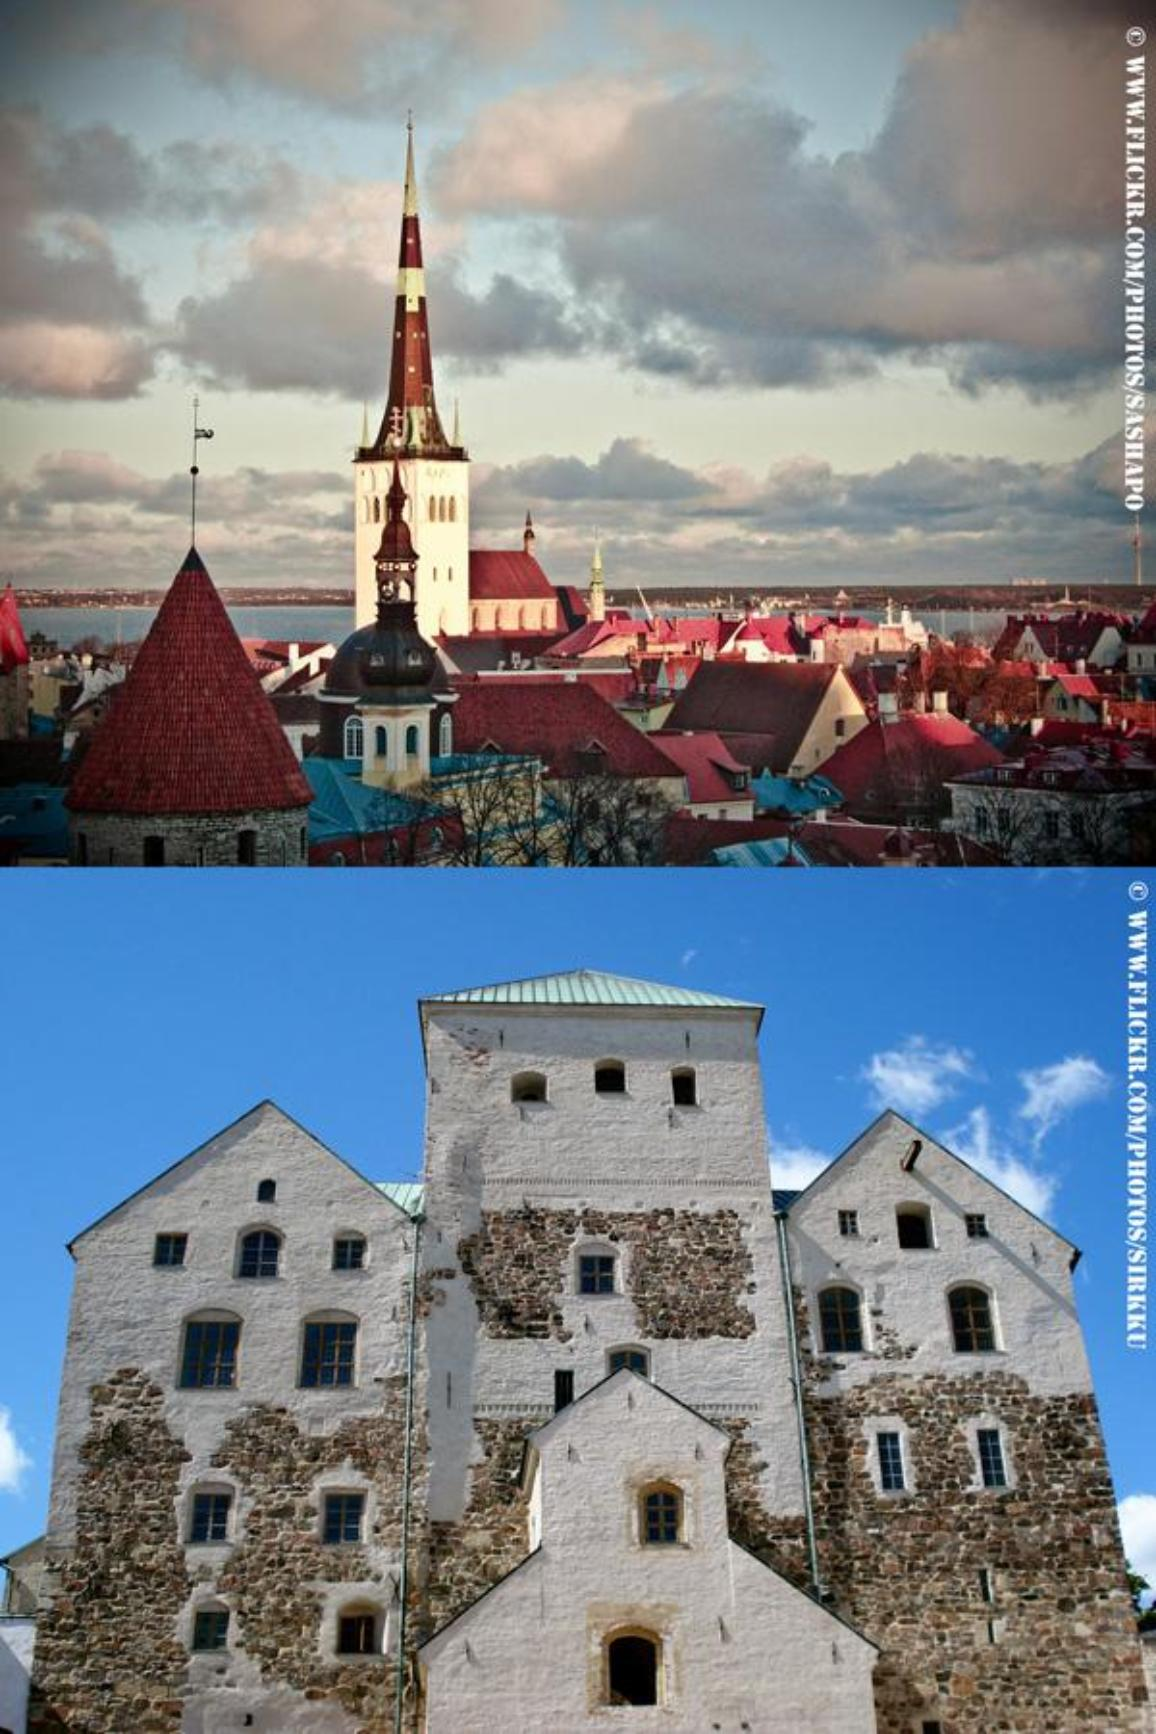 Tallinn and Turku are the two European Capital of Culture for 2011. ©www.flickr.com/photos/sashapo AND .../sirkku